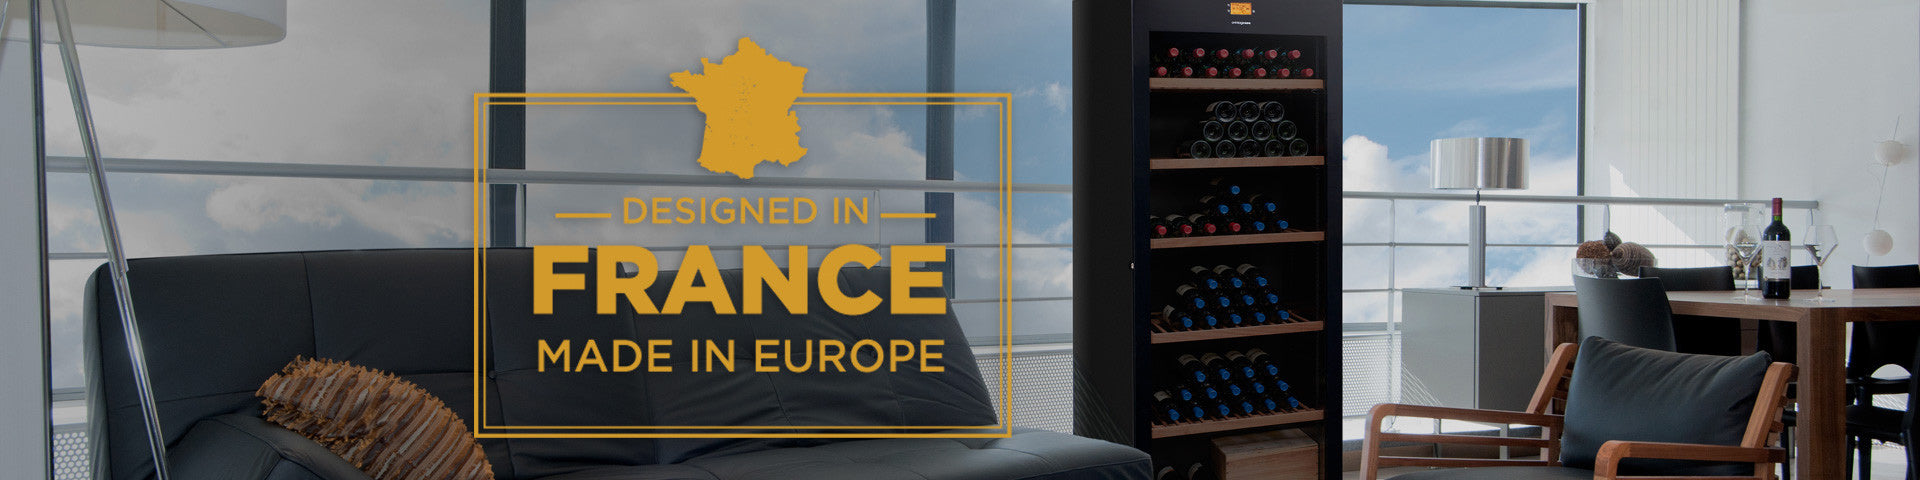 Designed in France - Made in Europe